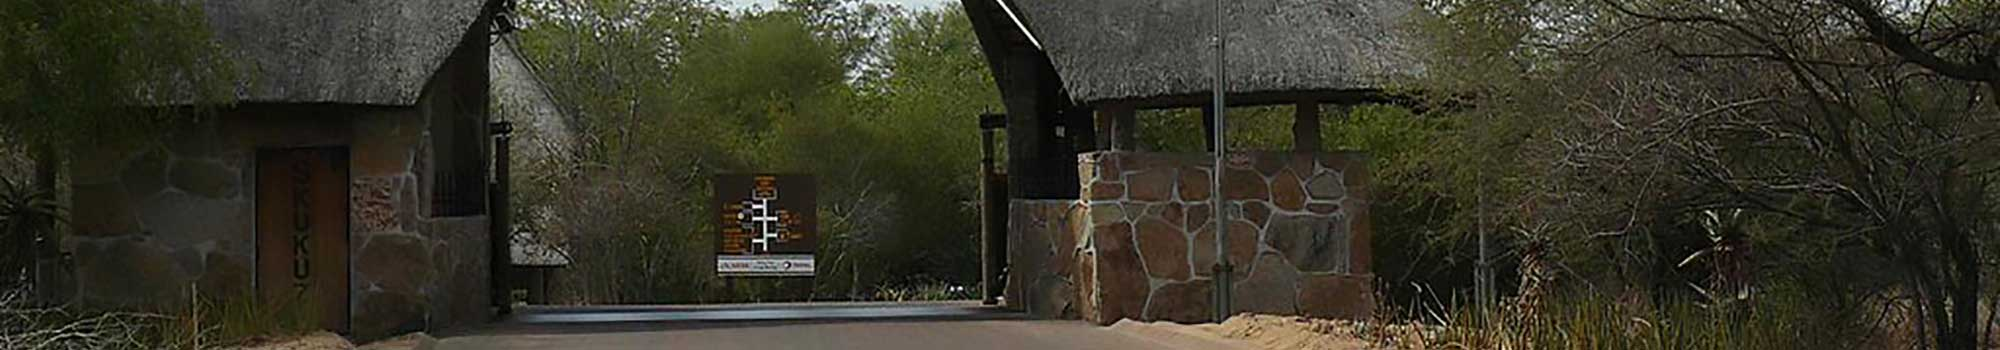 Entrace gate to Skukuza Camp in the Kruger National Park